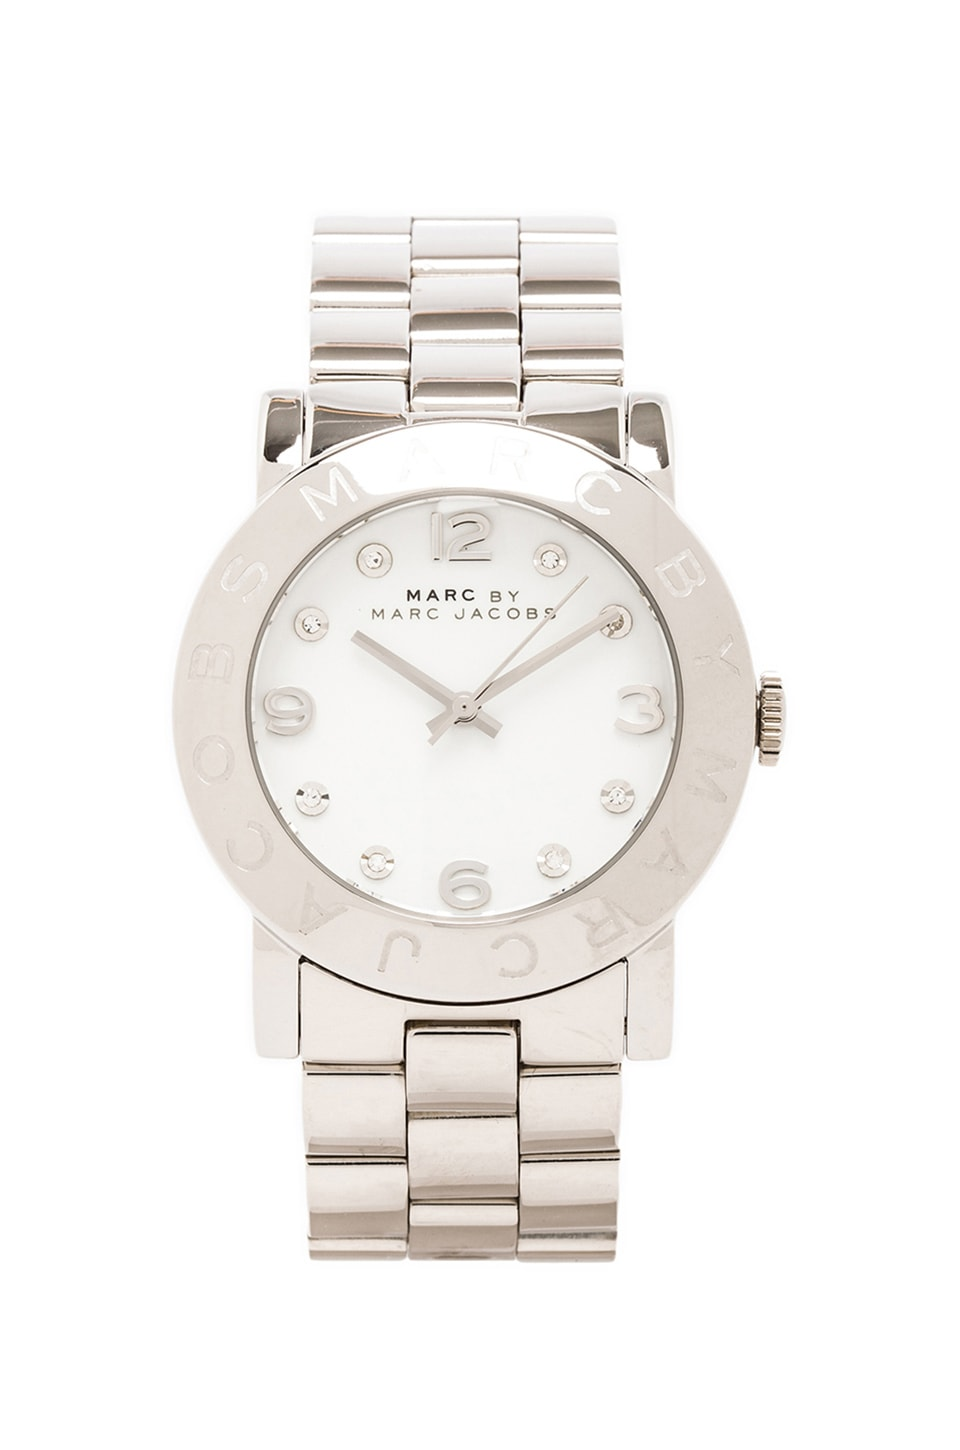 Marc by Marc Jacobs Amy Watch in Silver